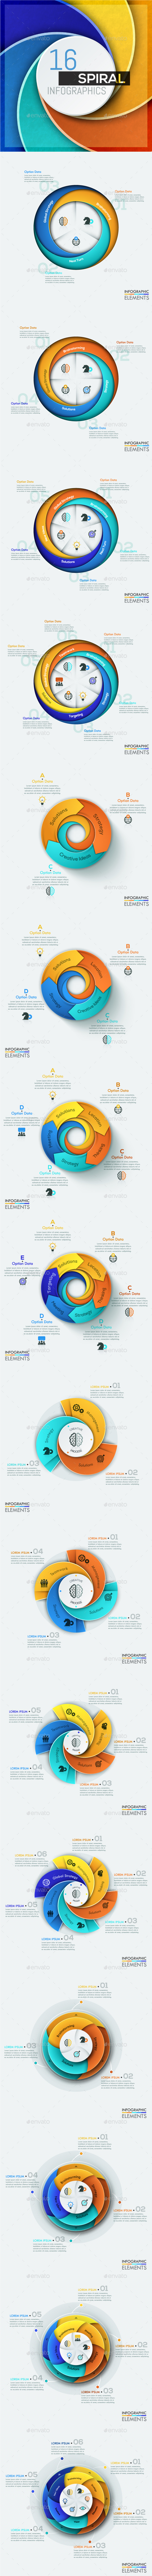 16 Spiral Infographic Templates - Infographics